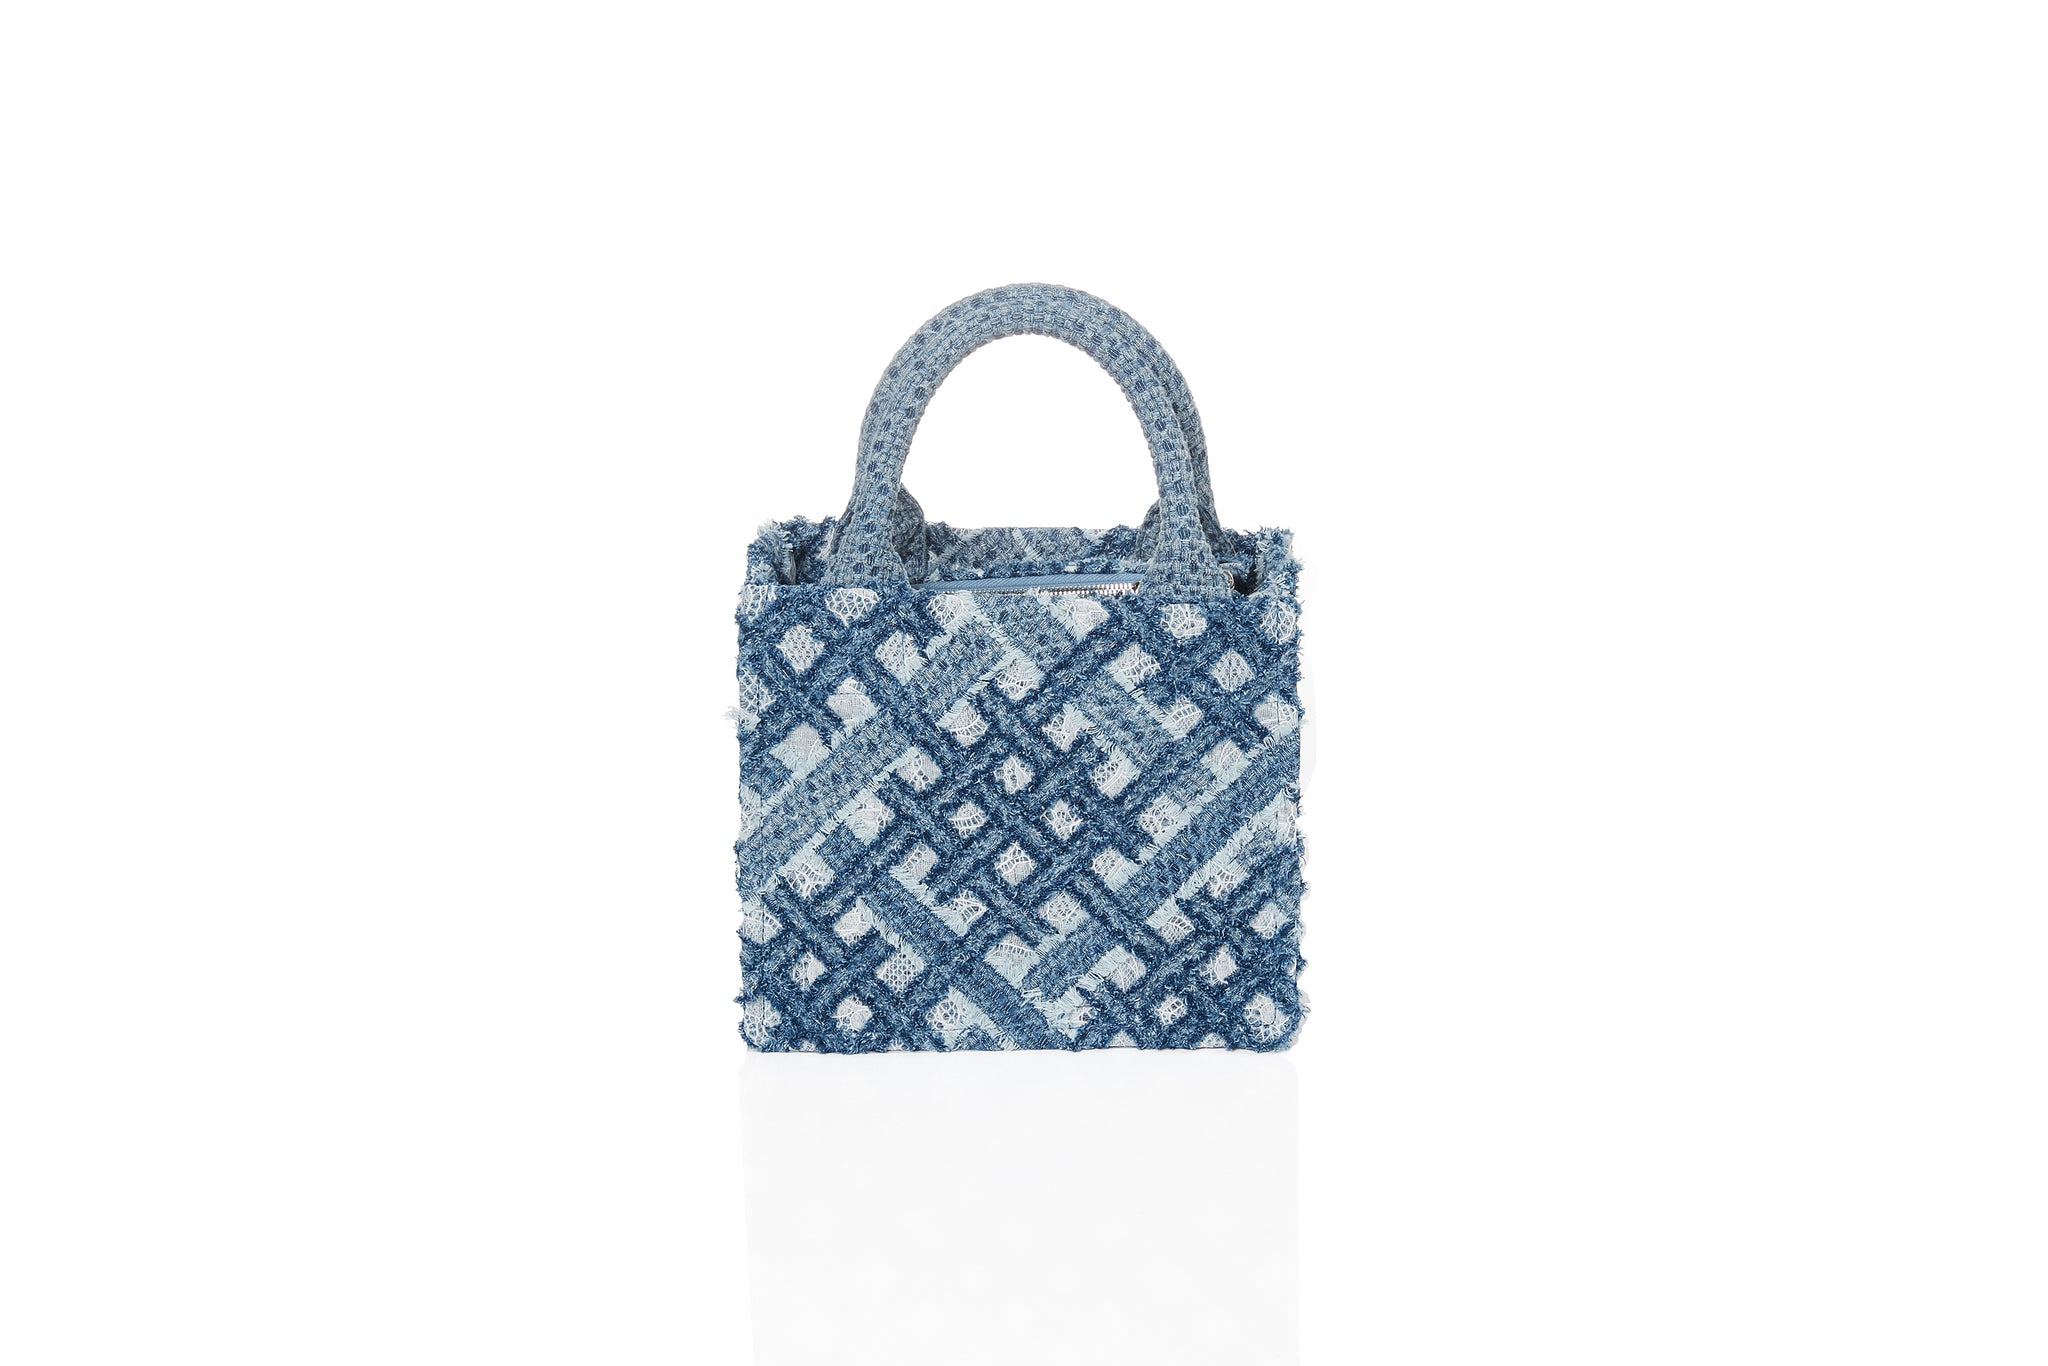 Handwoven Denim on Lace Bag, Small Square Tote, Pearl Chain, Light Blue